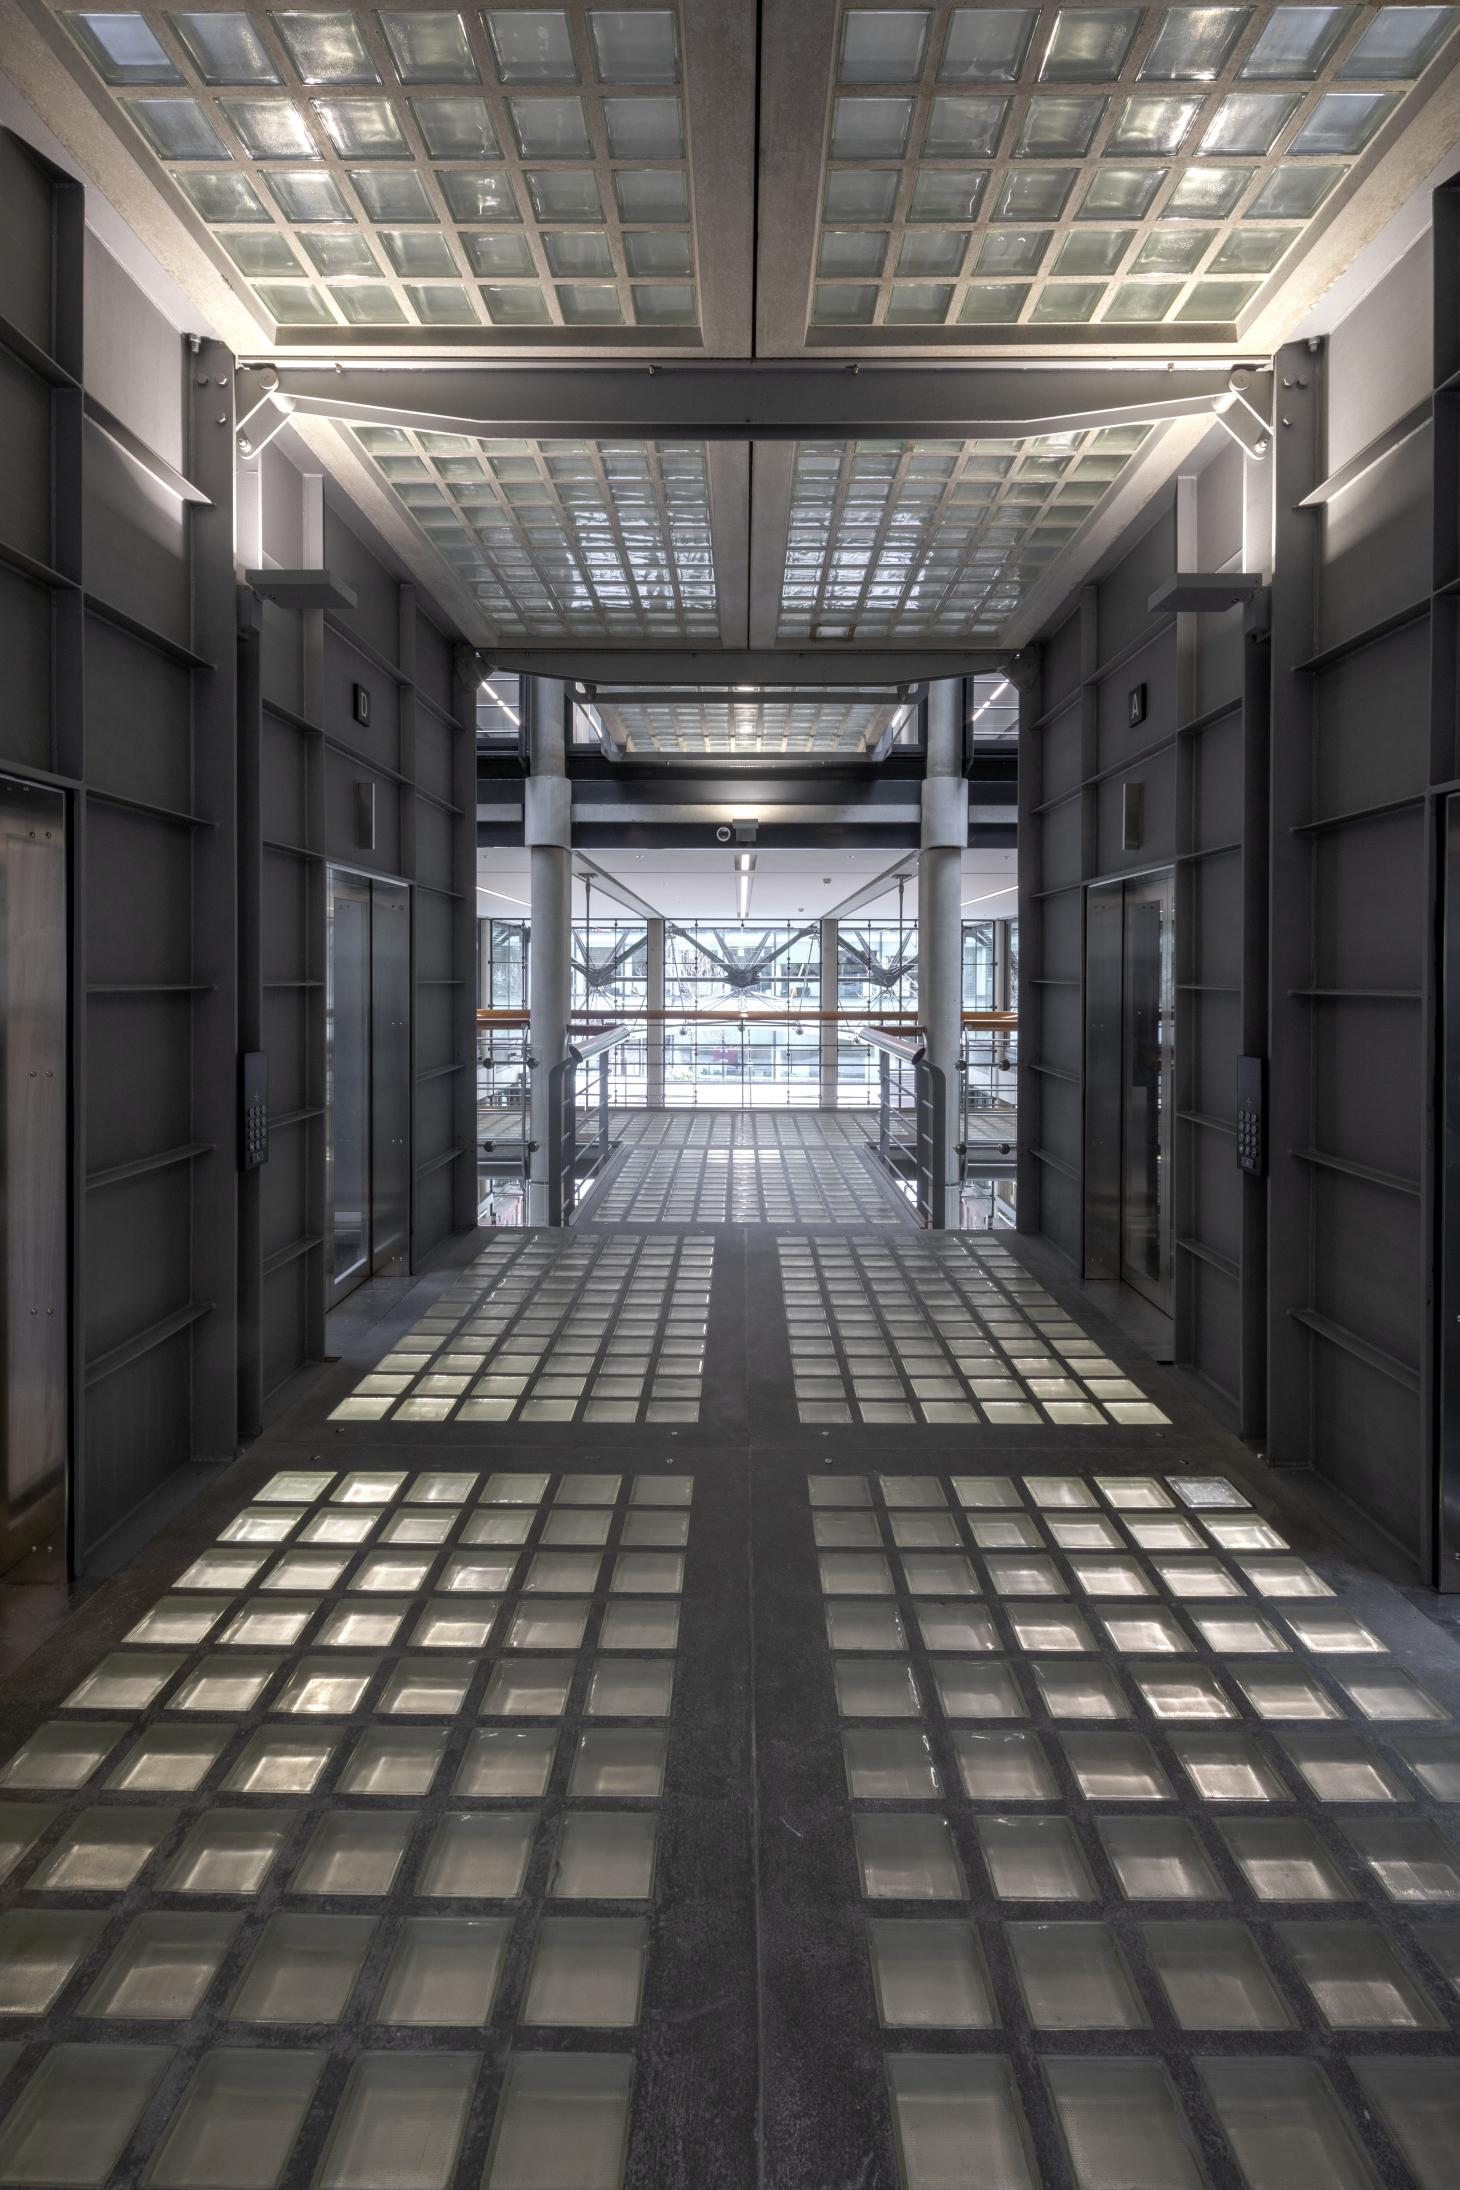 Corridor with glass and concrete